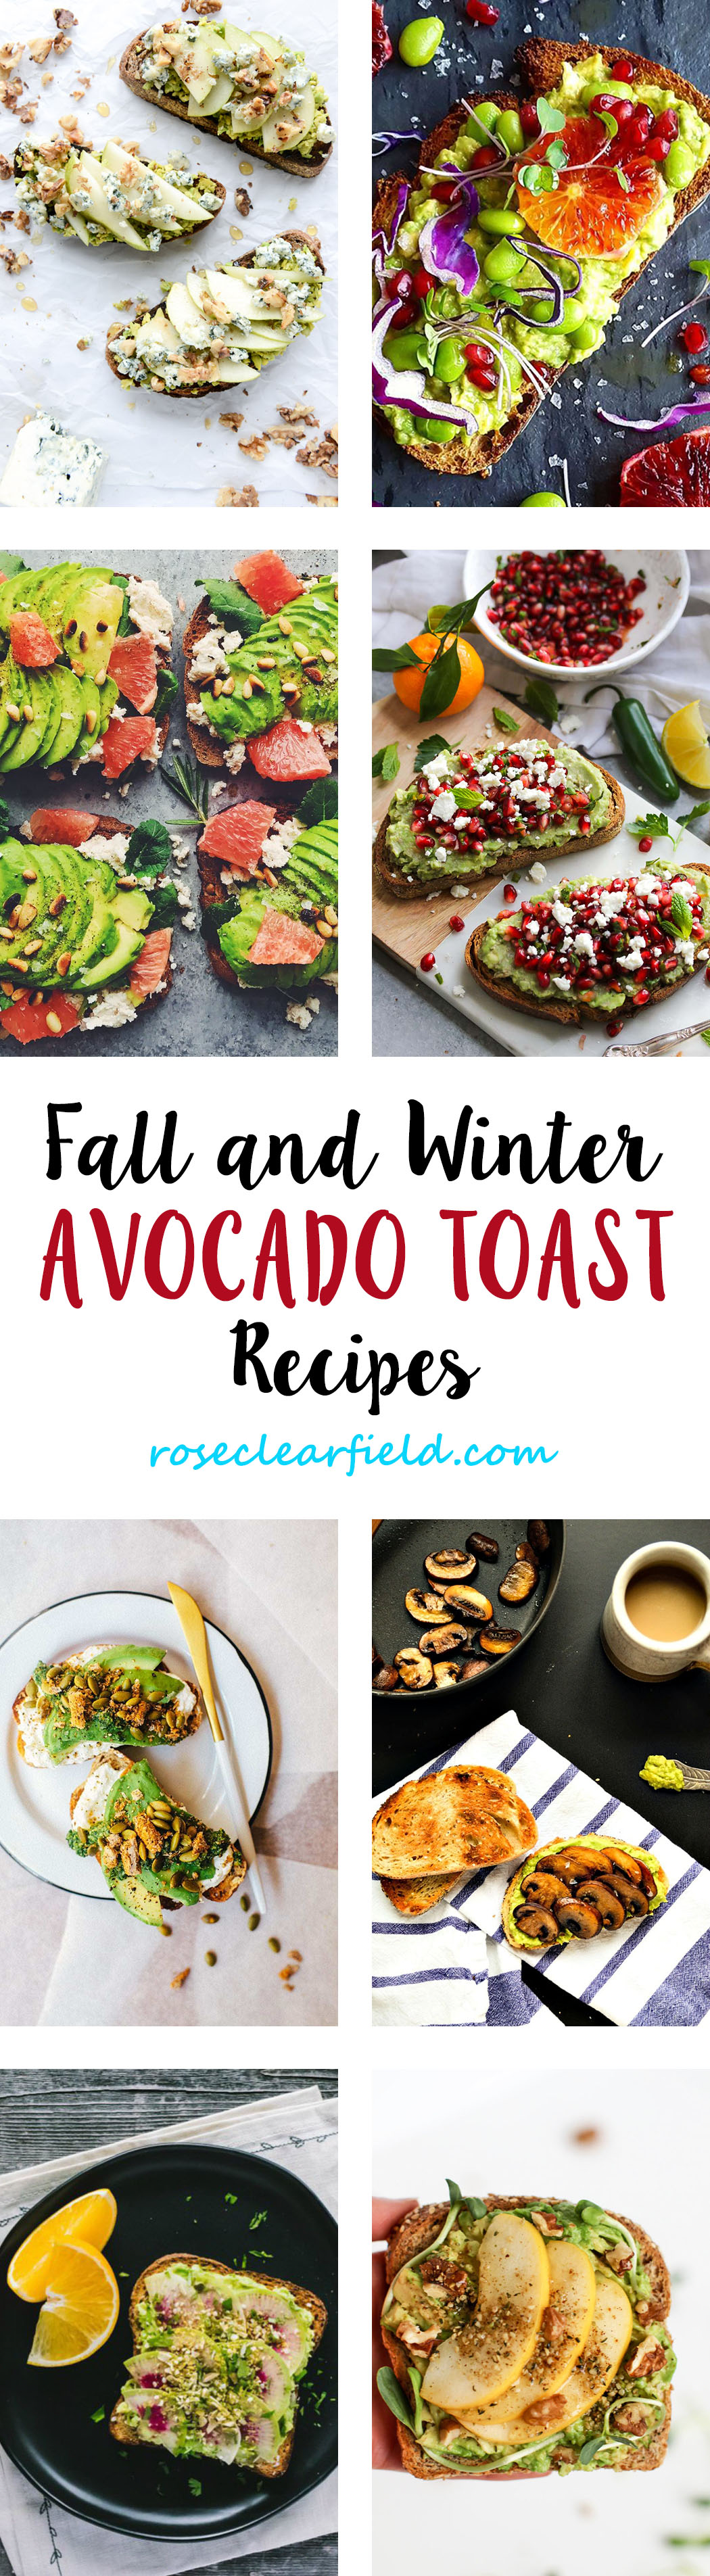 Fall and Winter Avocado Toast Recipes   https://www.roseclearfield.com